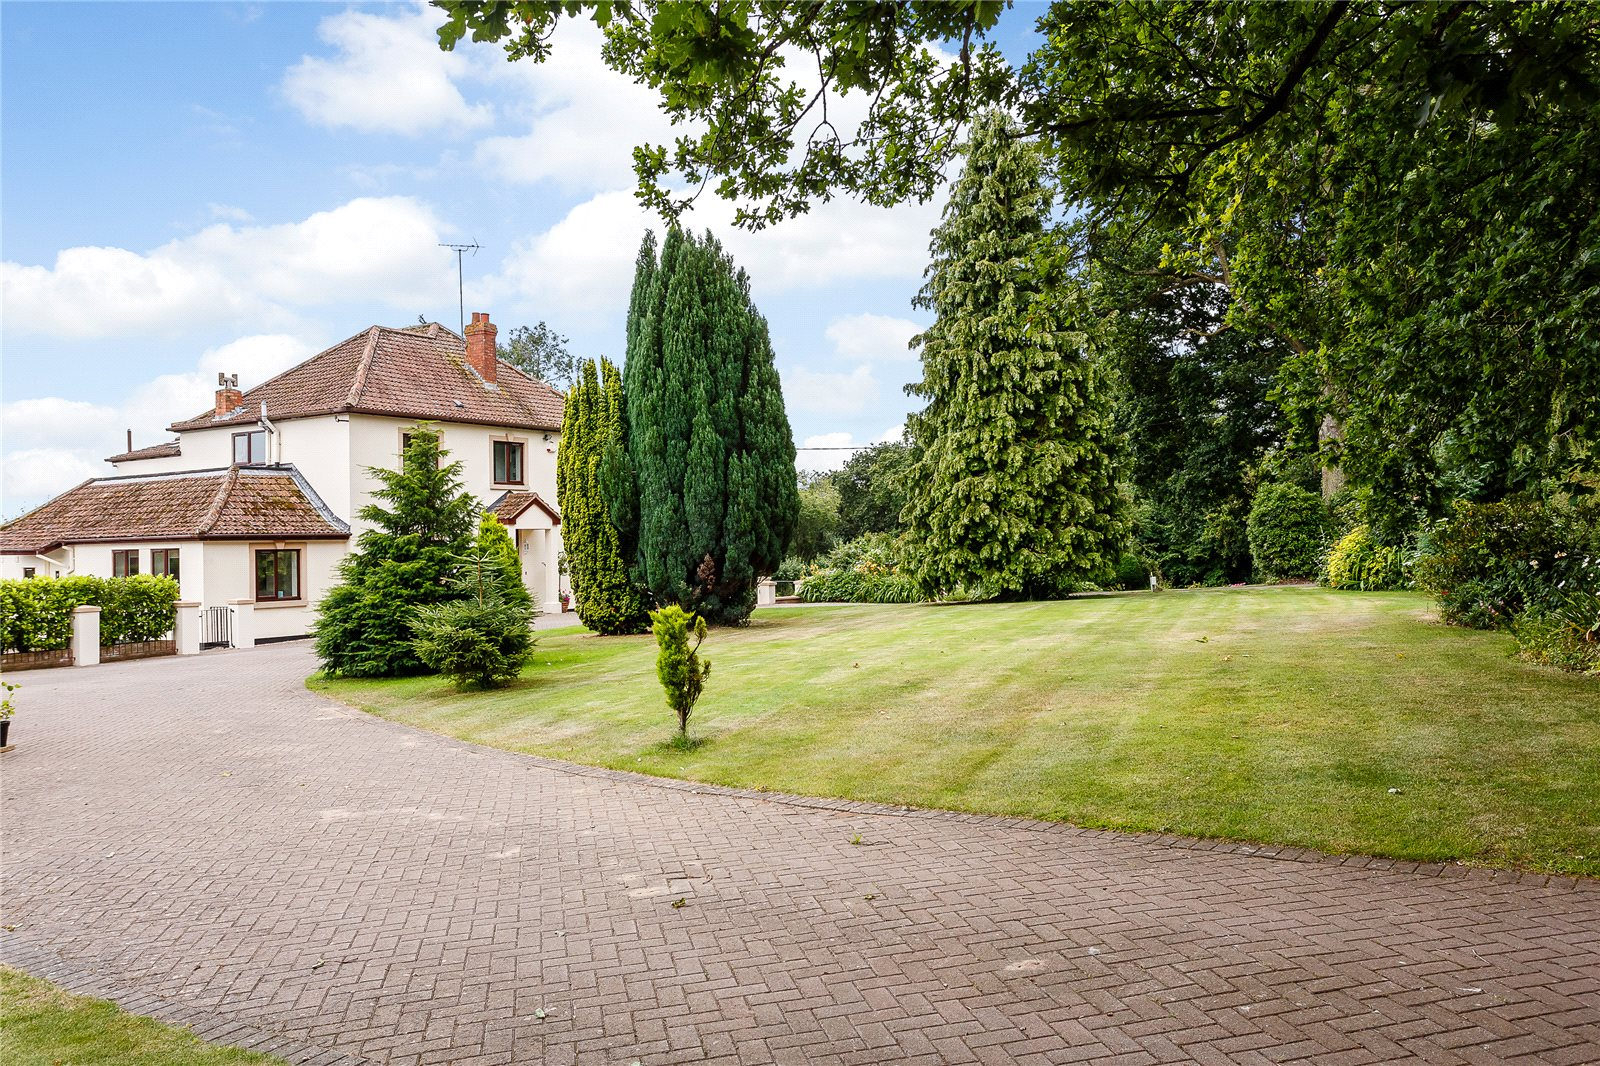 Additional photo for property listing at Sidbrook, West Monkton, Taunton, Somerset, TA2 Taunton, Αγγλια